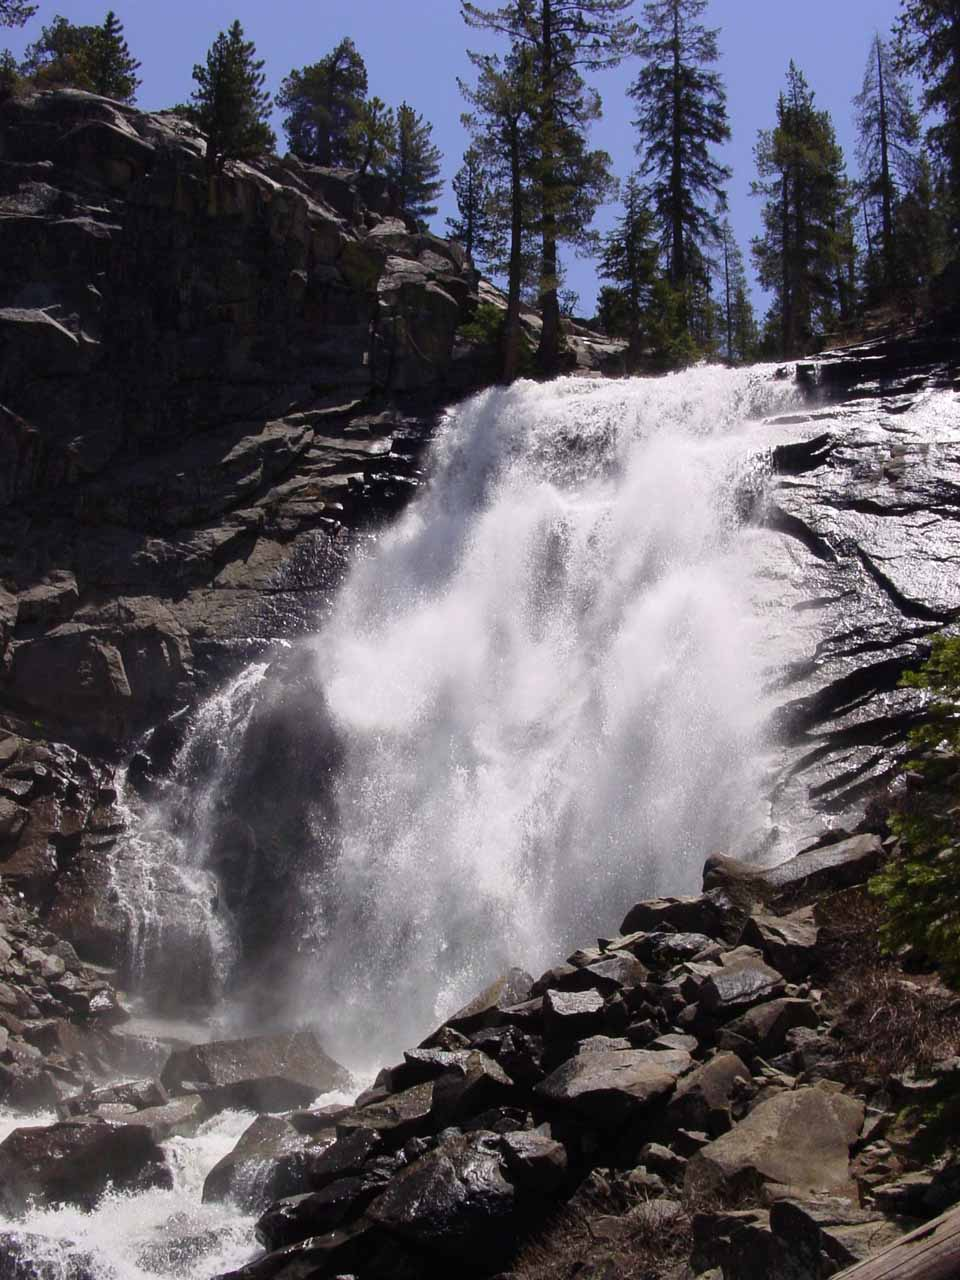 For a trip down memory lane, here was Rancheria Falls in high flow back in early June 2002